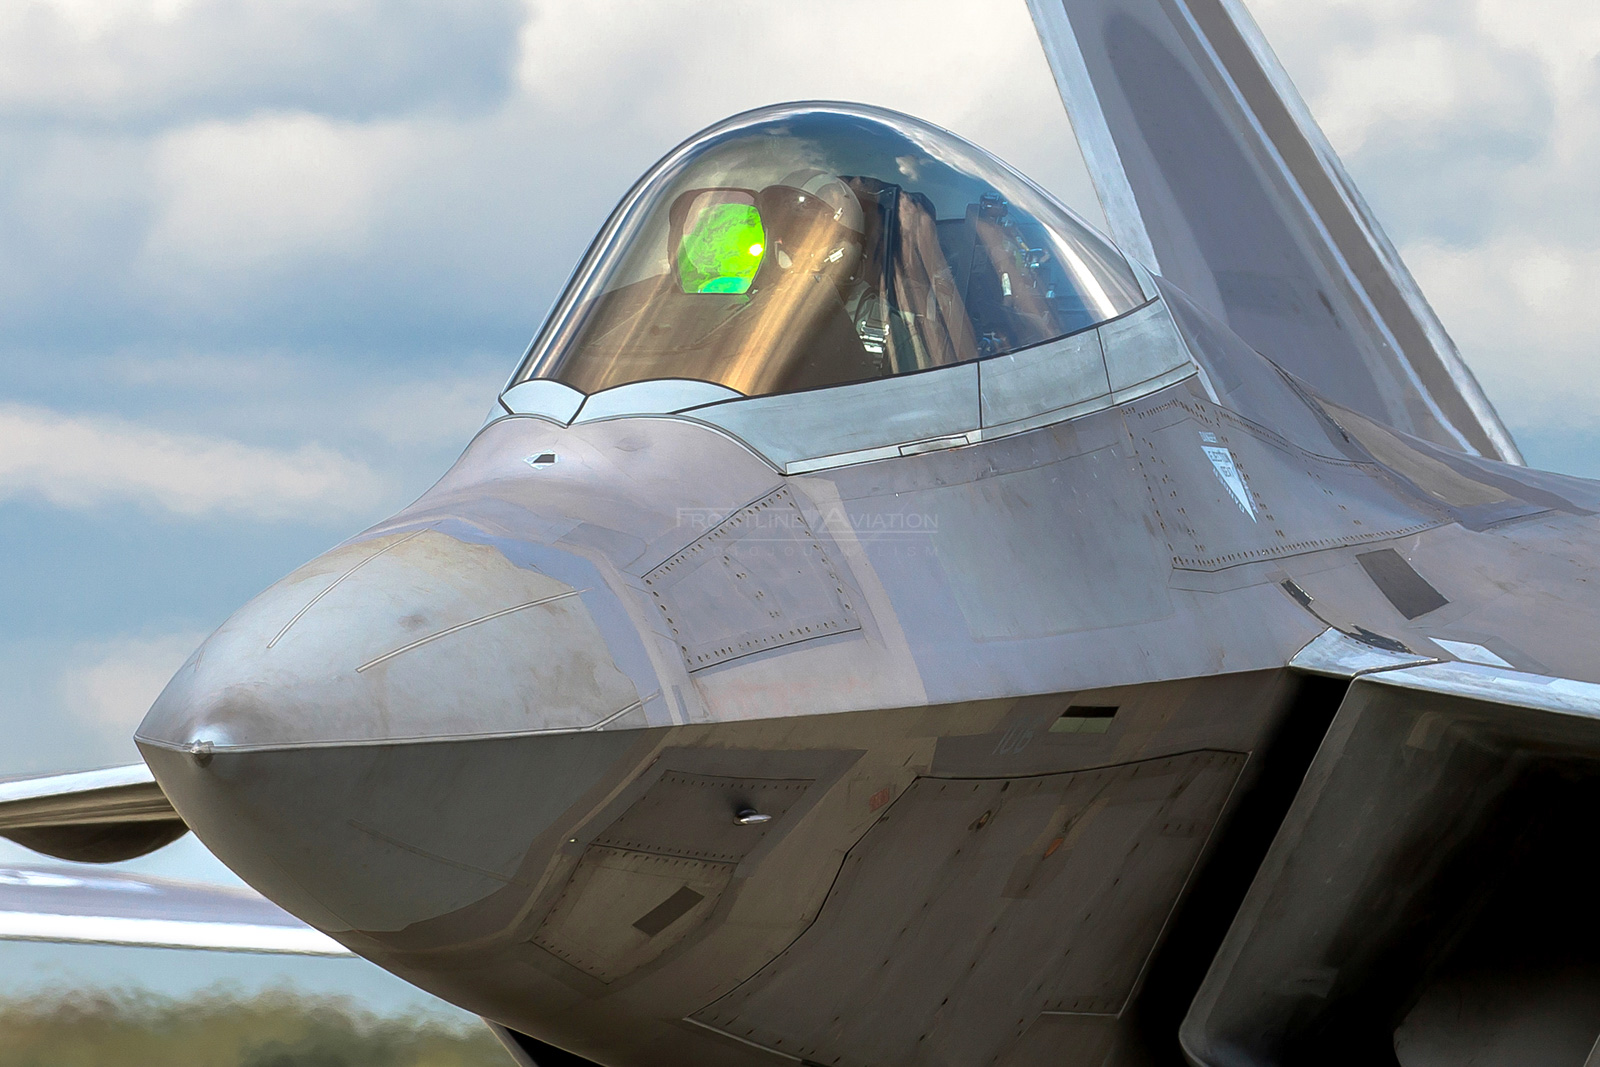 F-22A Raptor, 05-4106, 95th FS, Tyndall AFB